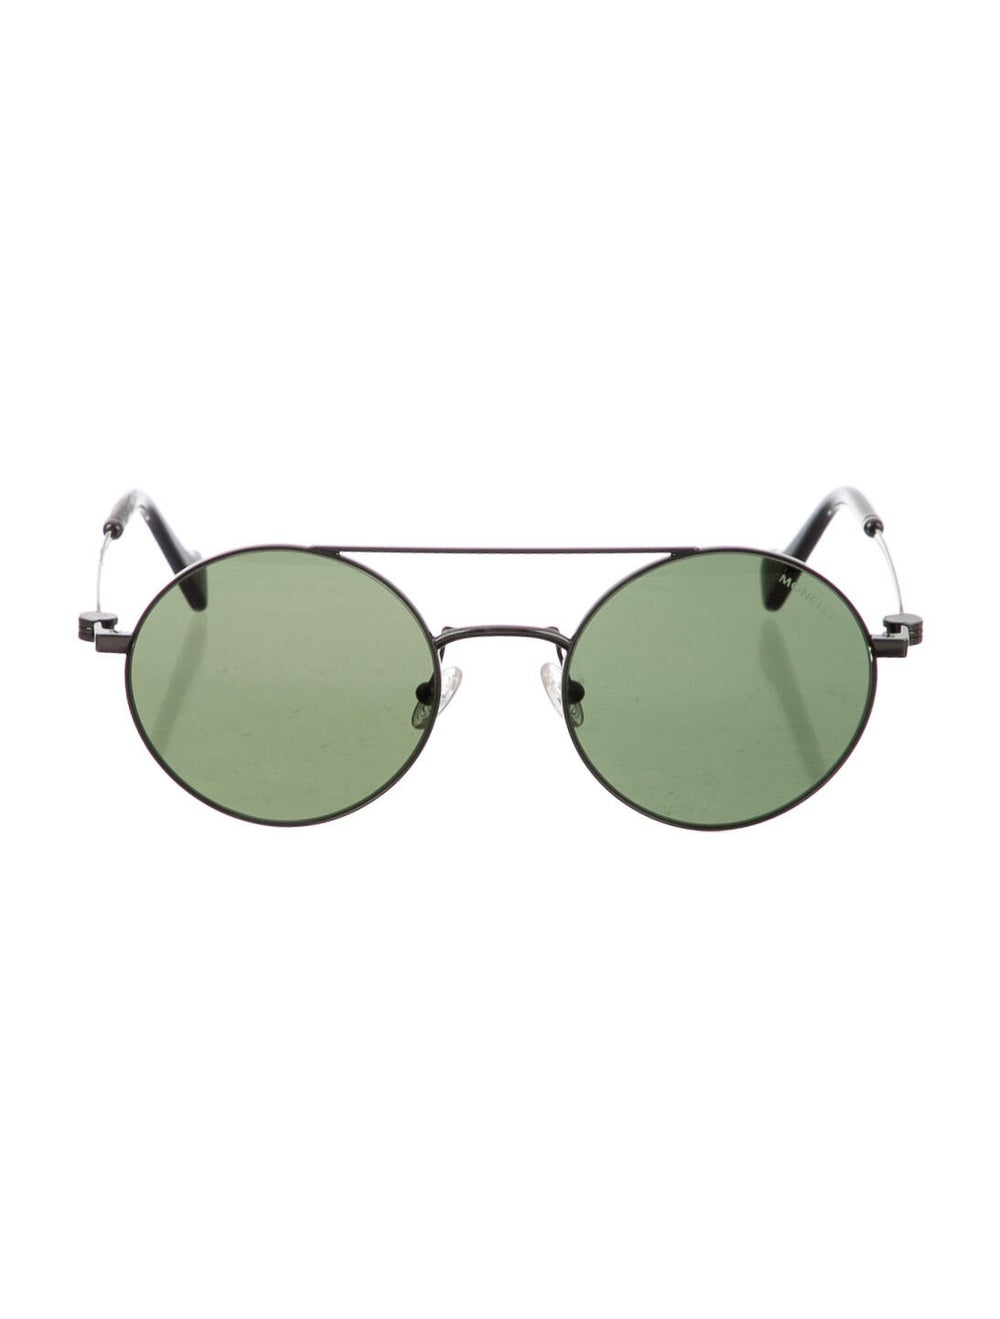 Moncler Round Tinted Sunglasses Silver - image 1